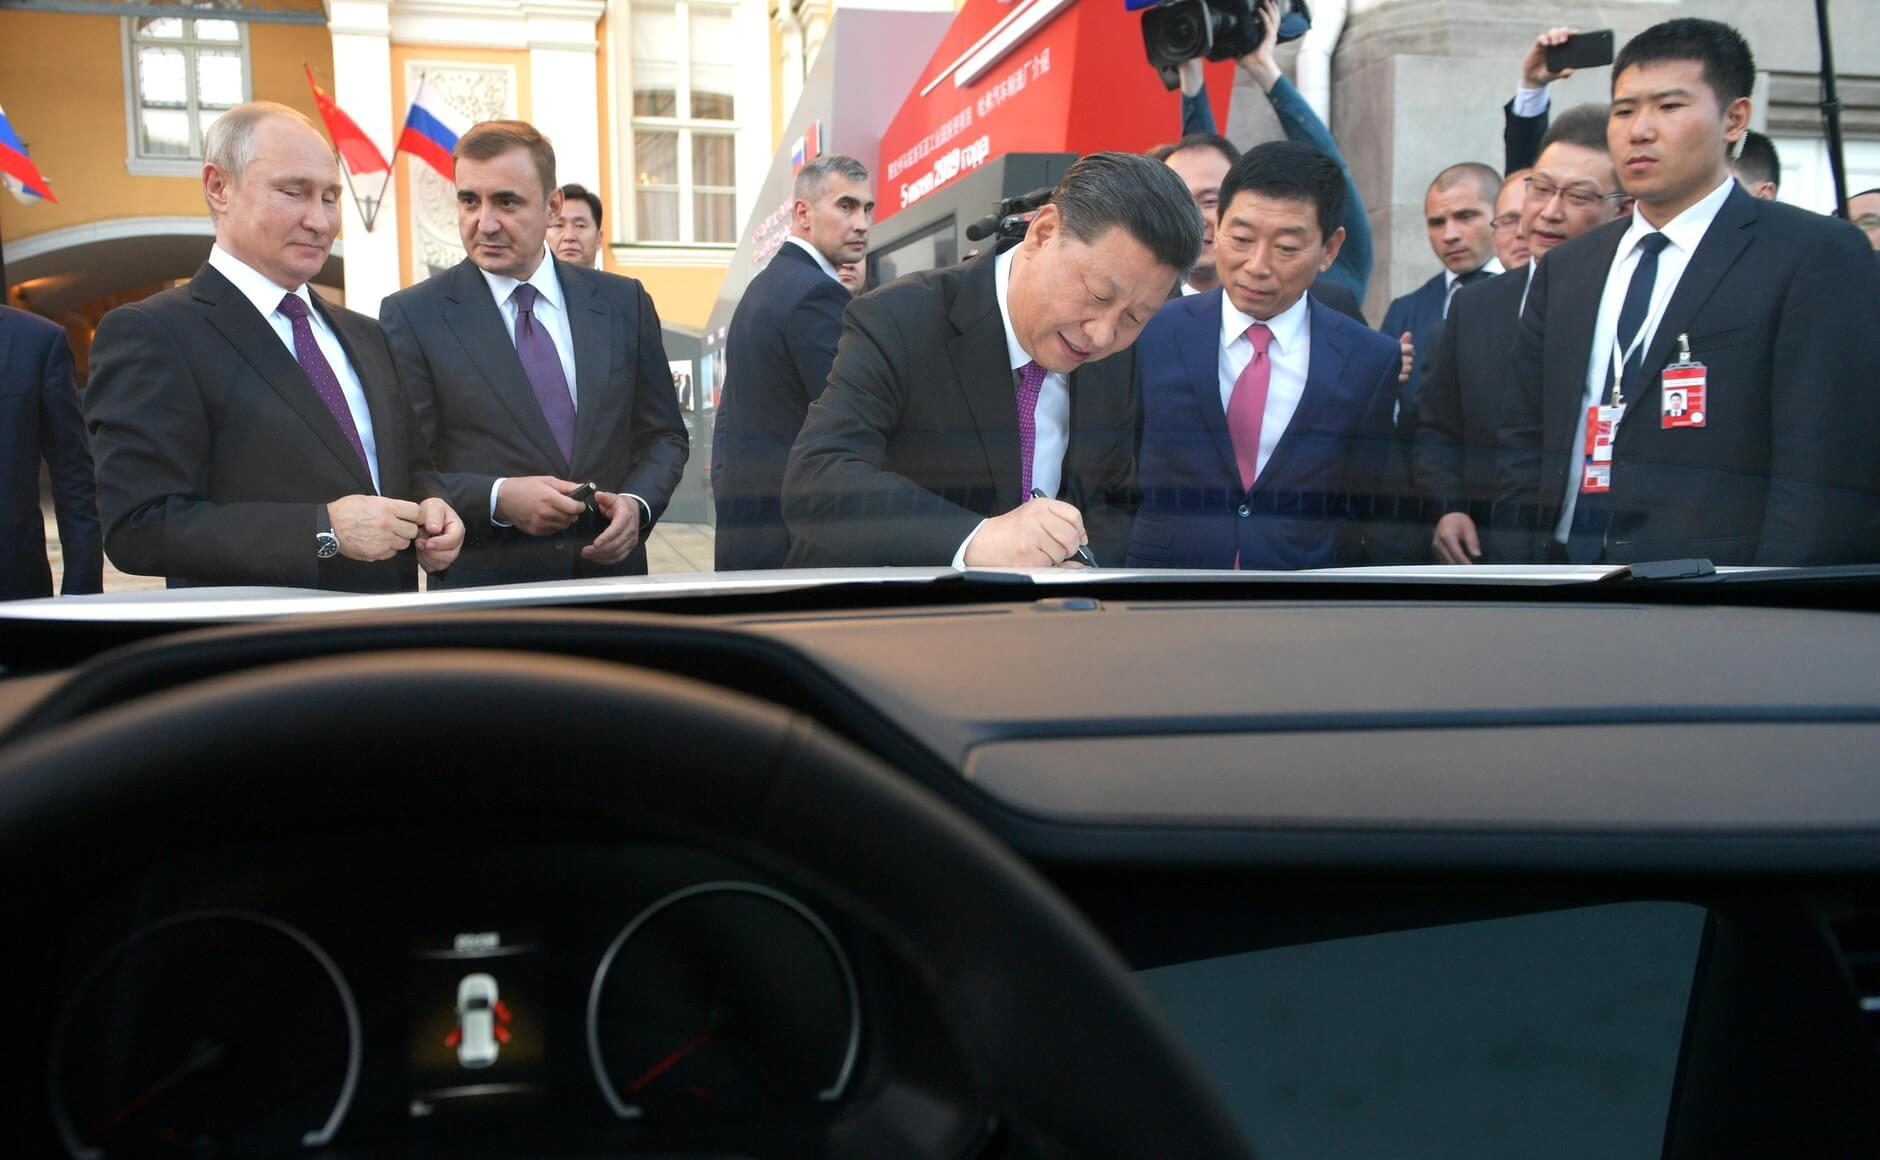 Vladimir Putin and Xi Jinping in 2019. Kremlin.ru - Wikicommons